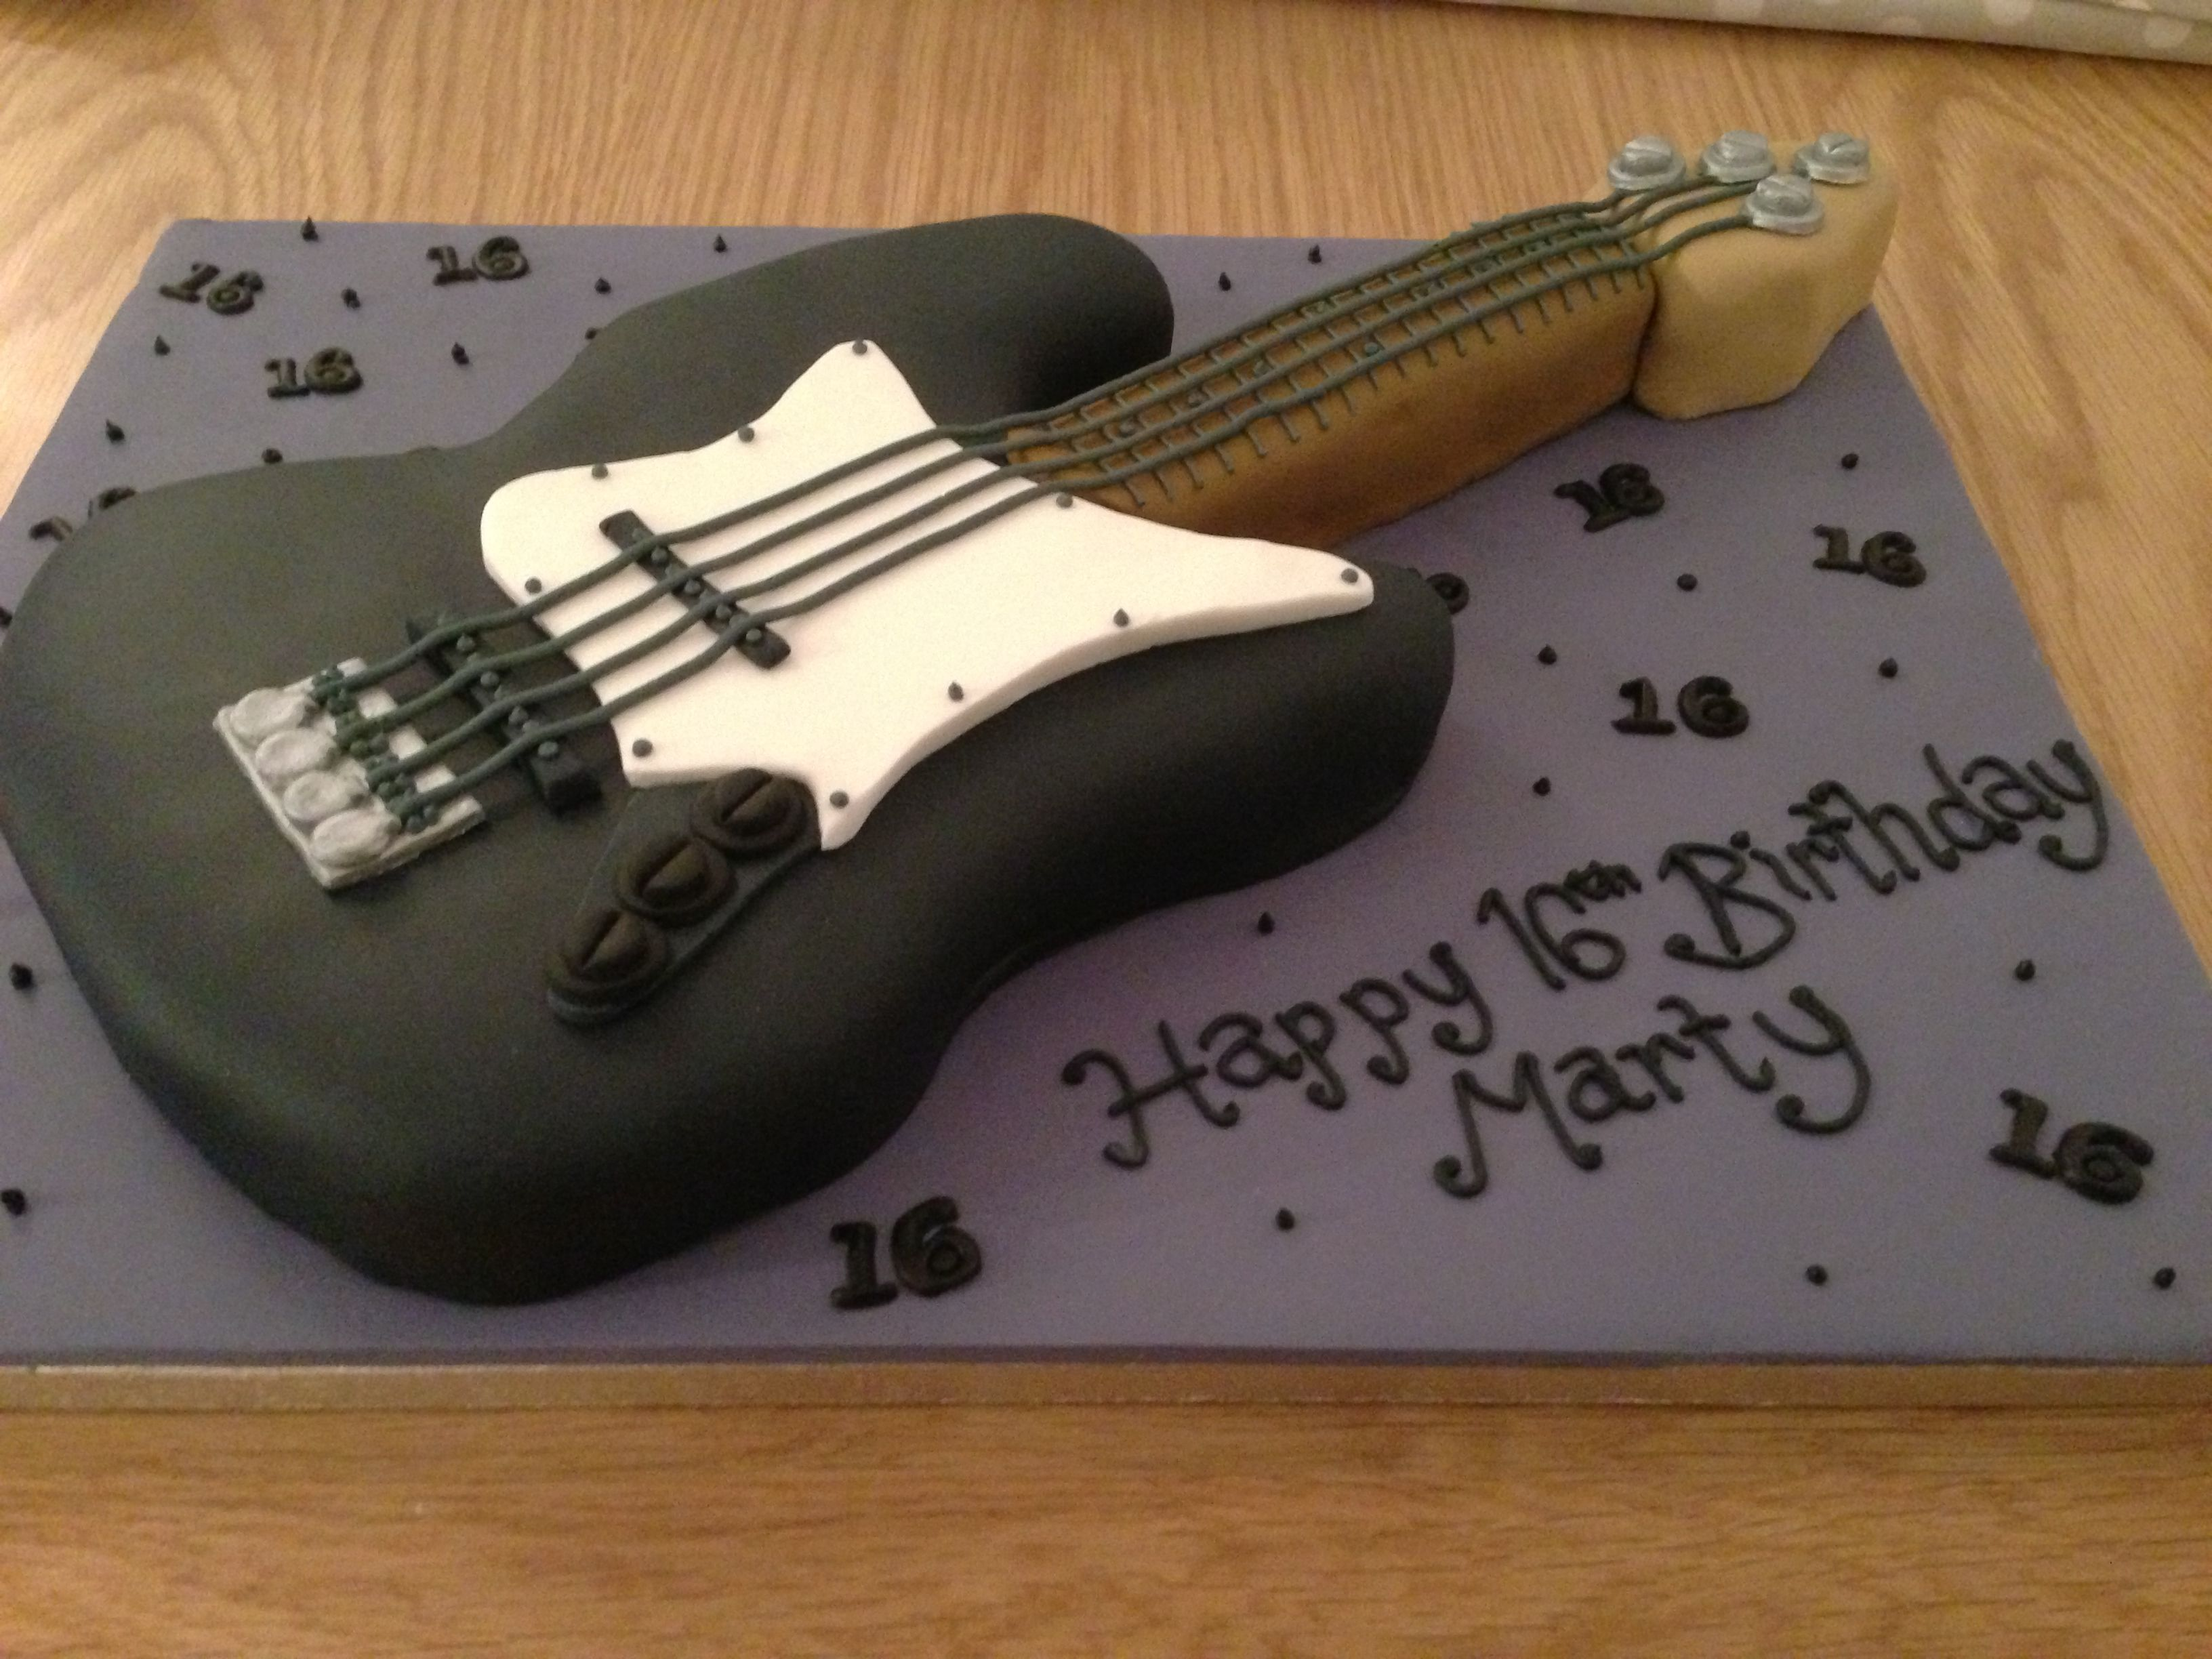 16th Birthday Guitar Shaped Cake